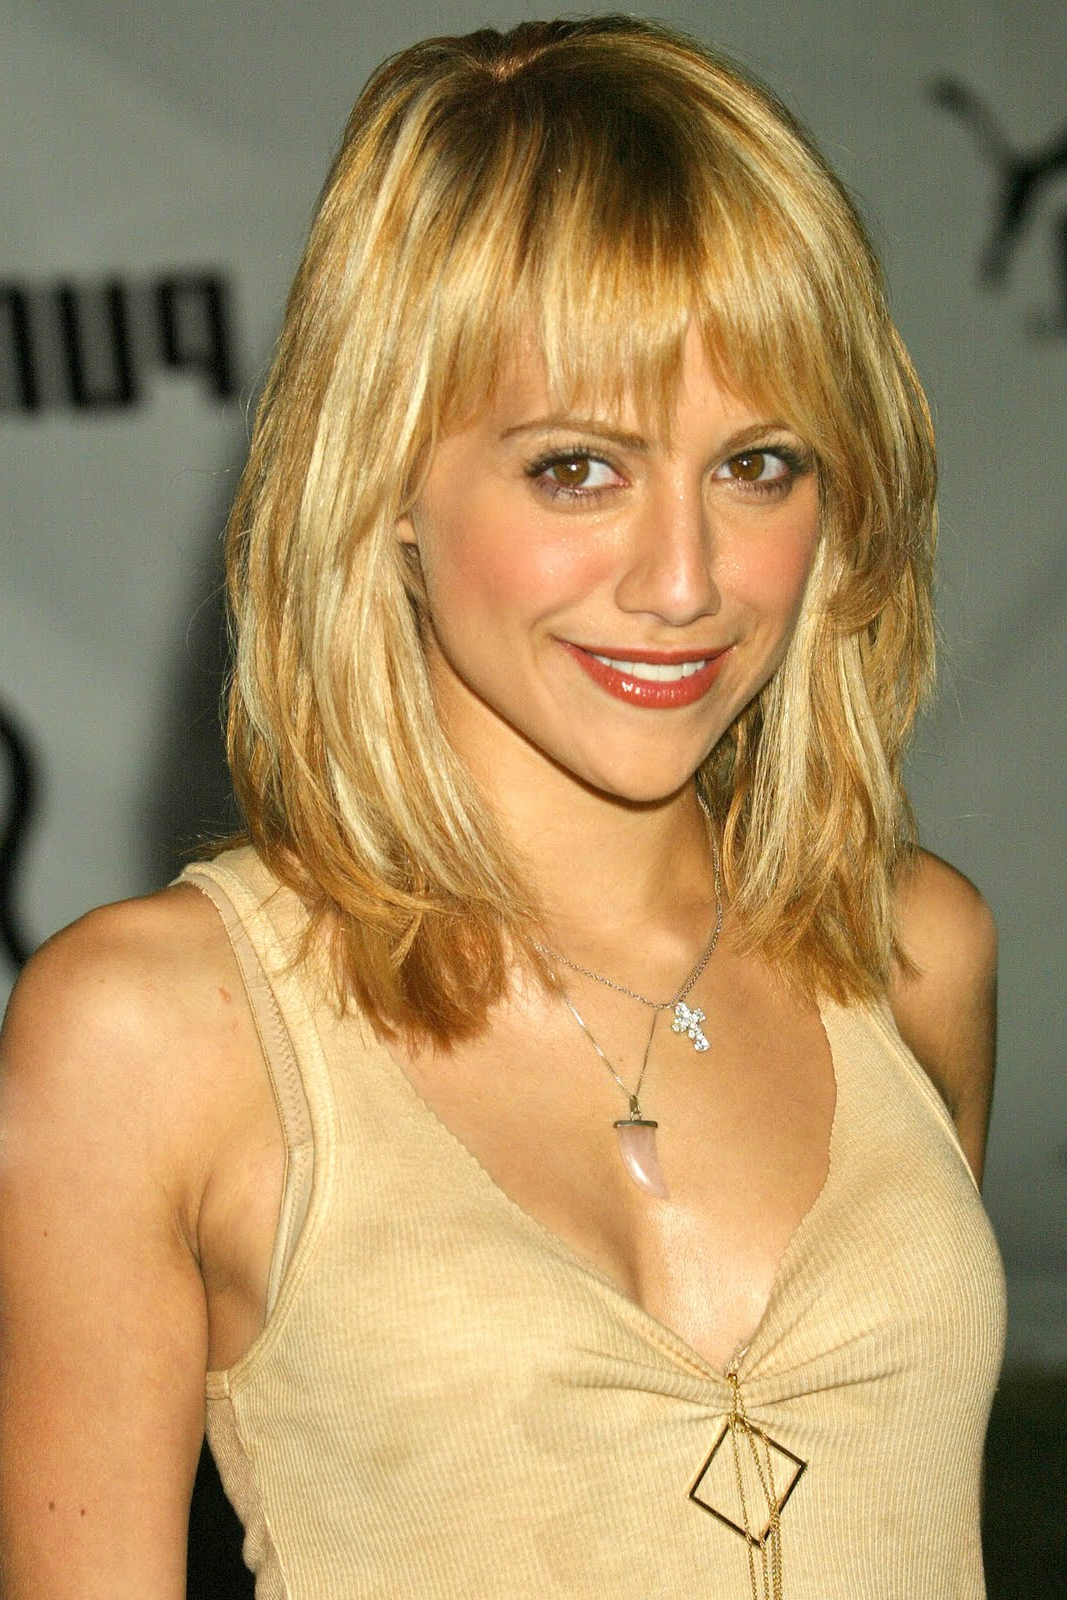 Well Liked Mid Length Haircuts With Side Layers With Medium Length Haircuts With Short Layers – Hairstyle For Women & Man (View 18 of 20)